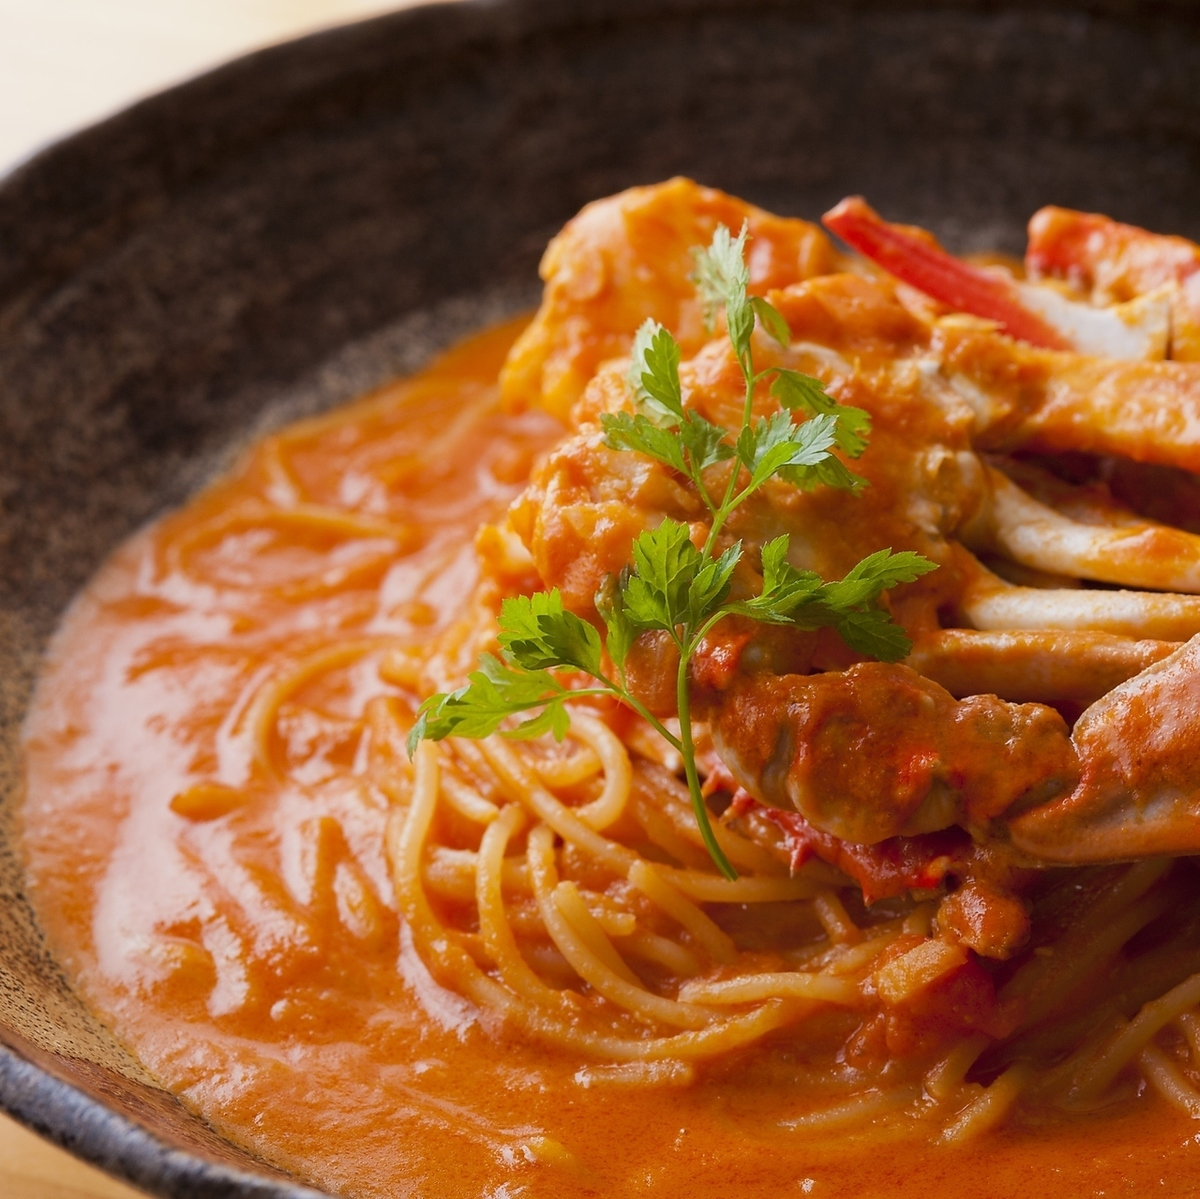 Crossing crab's tomato cream pasta